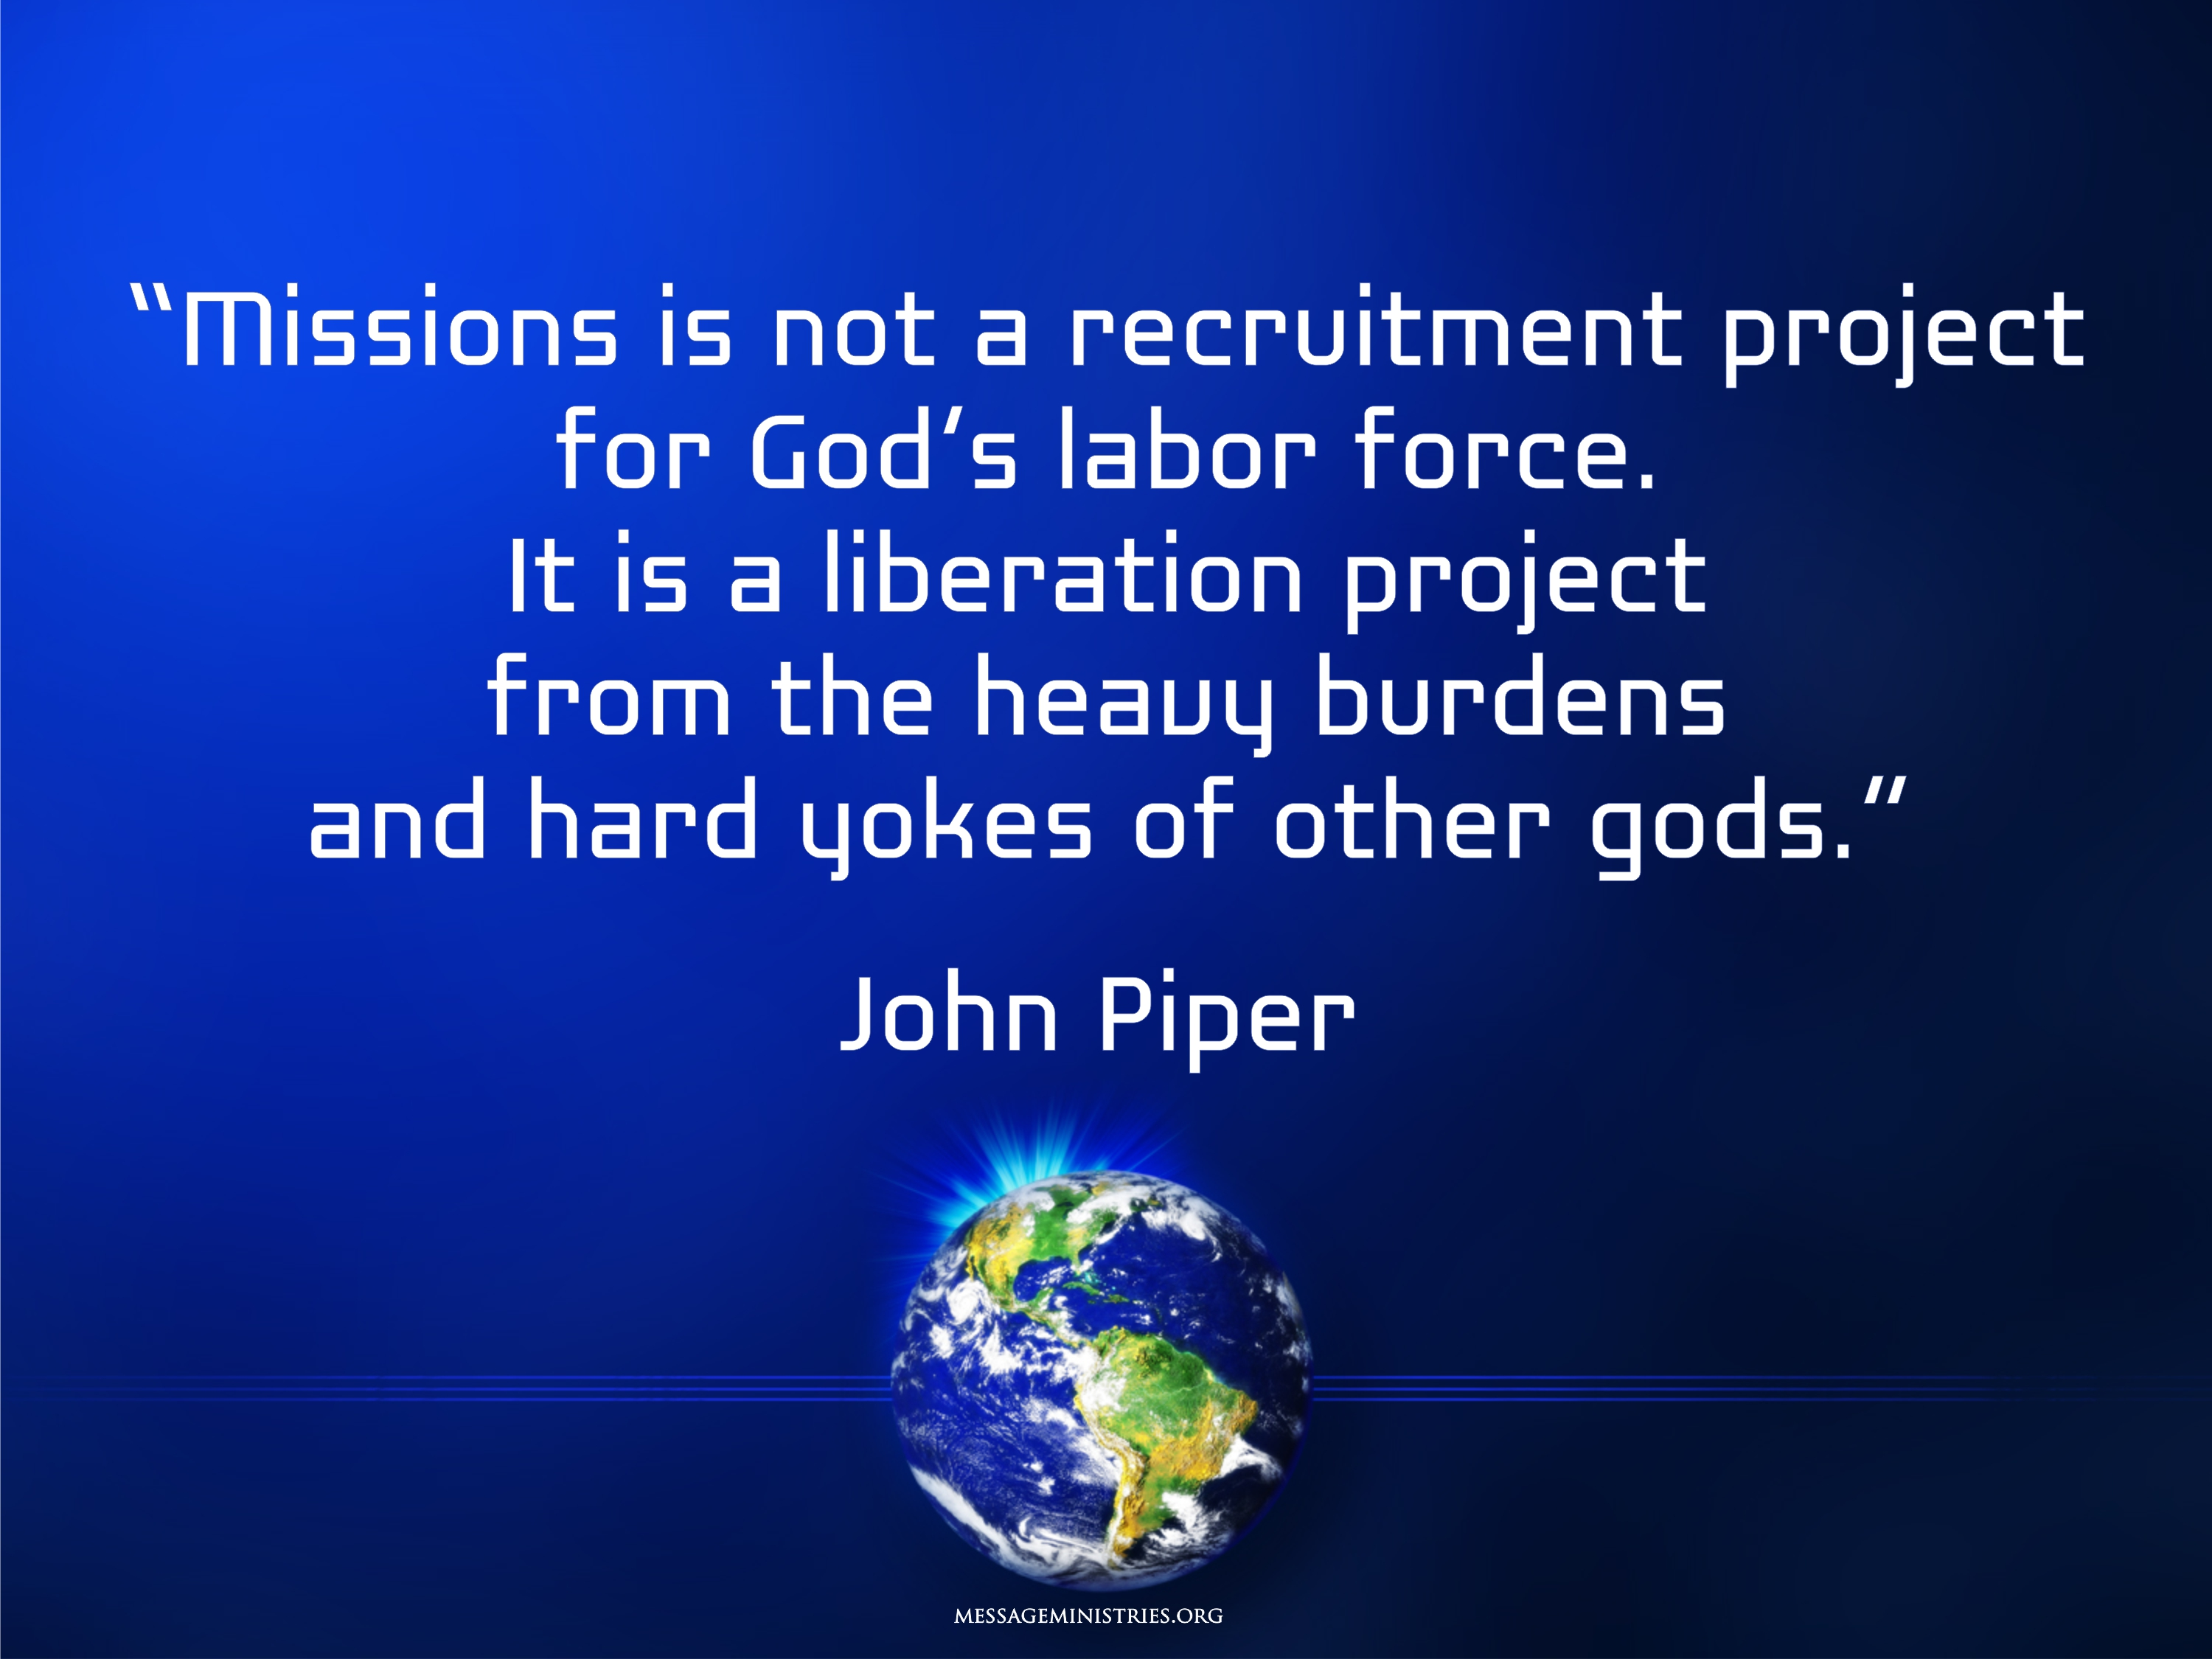 Missions is not - John Piper